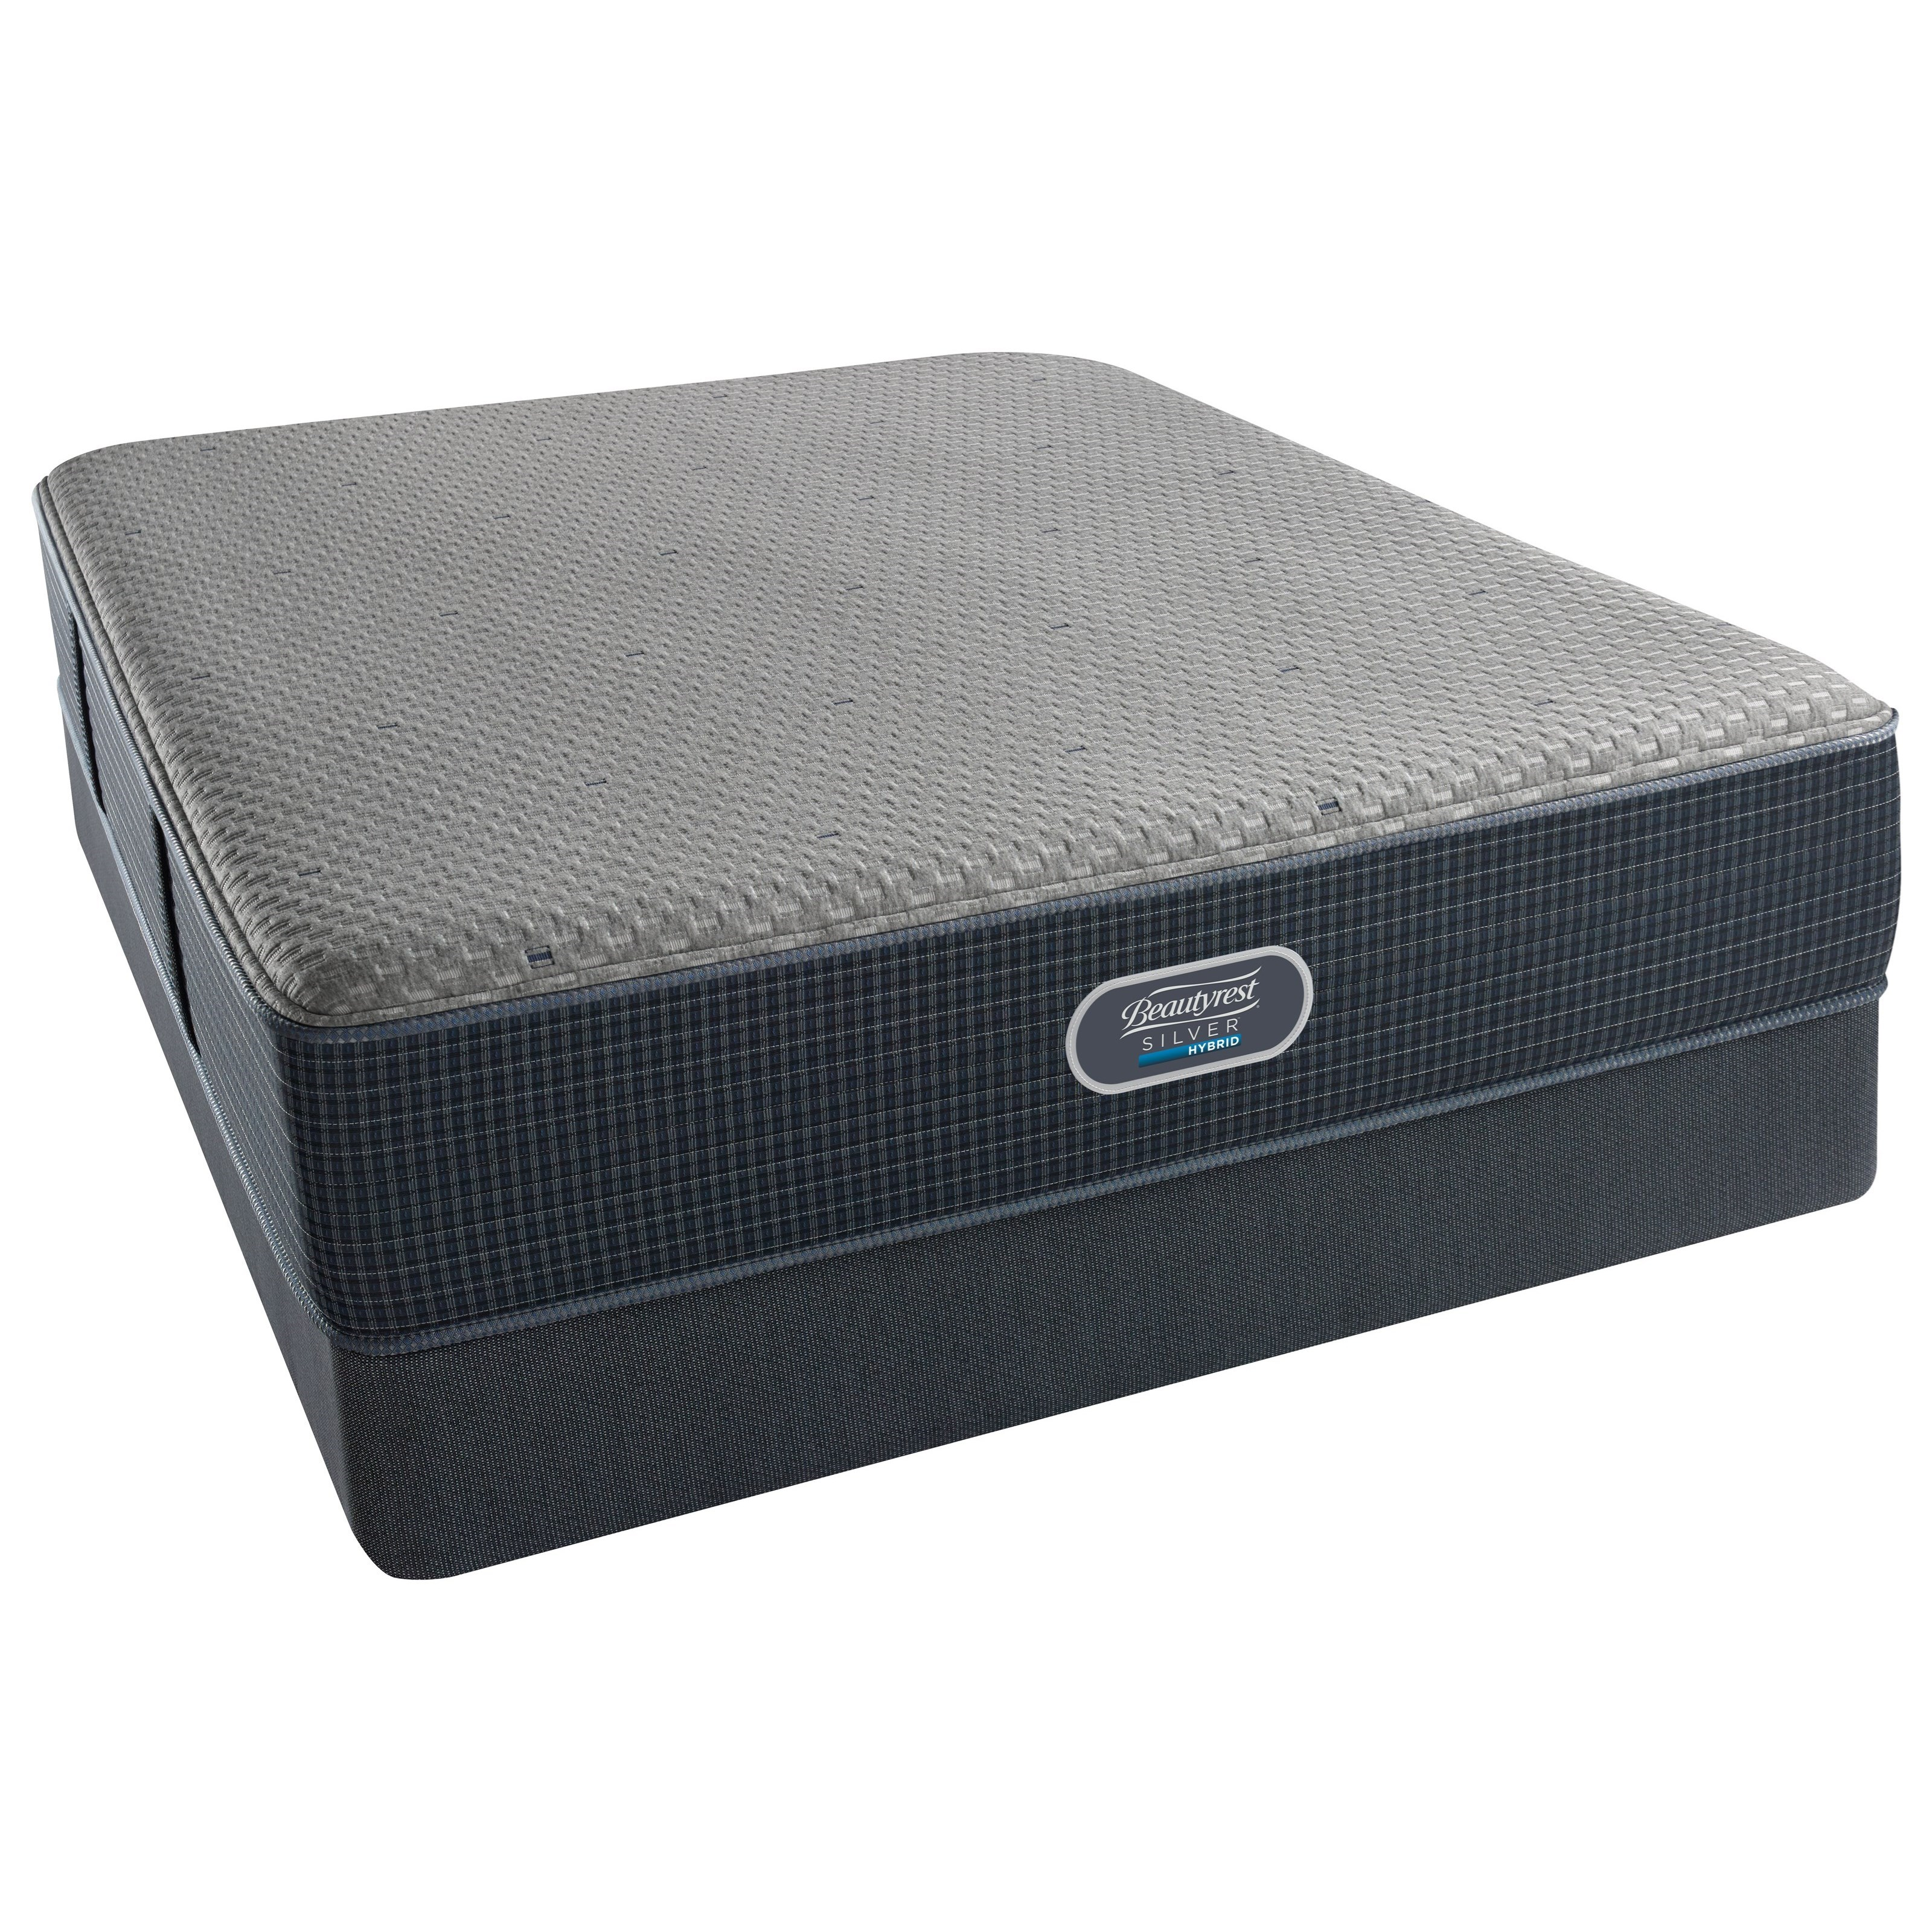 Beautyrest Silver Hybrid Beachwood Luxury Firm Twin XL Set - Item Number: 700601000-1020+700600254-5020